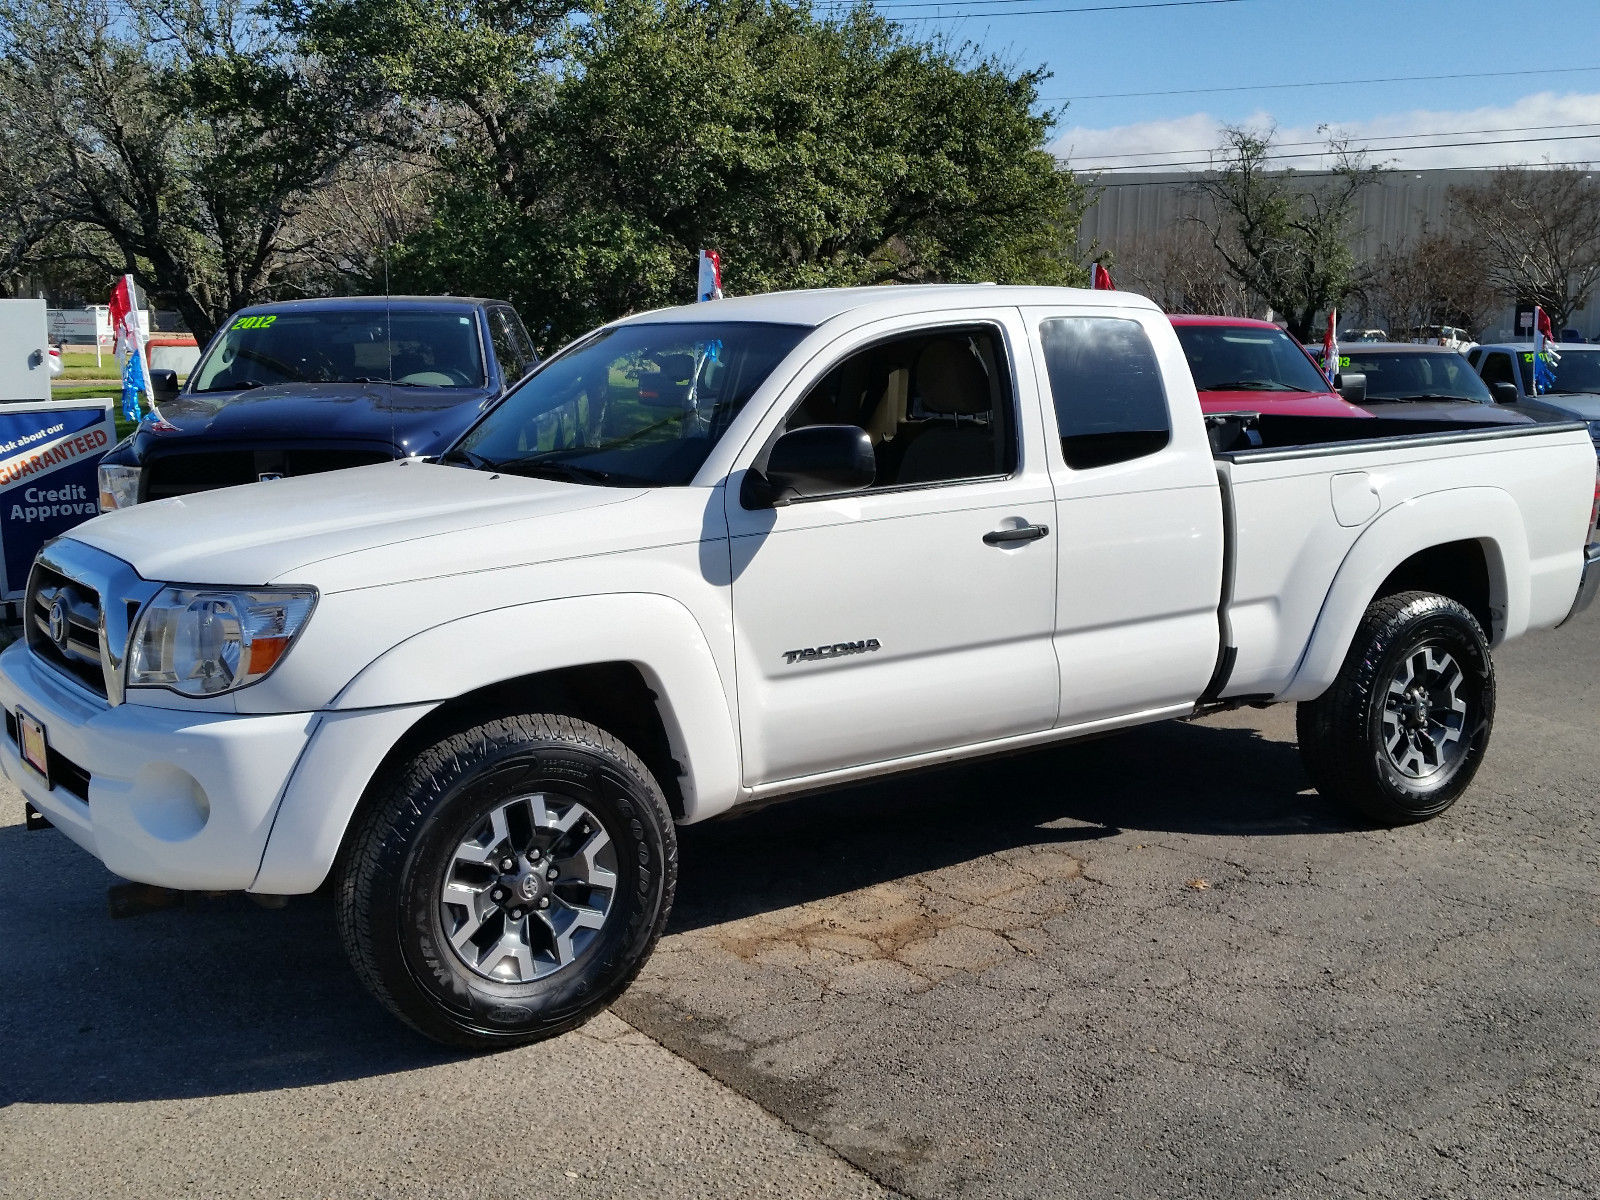 2009 toyota tacoma sr5 access cab 4wd for sale. Black Bedroom Furniture Sets. Home Design Ideas